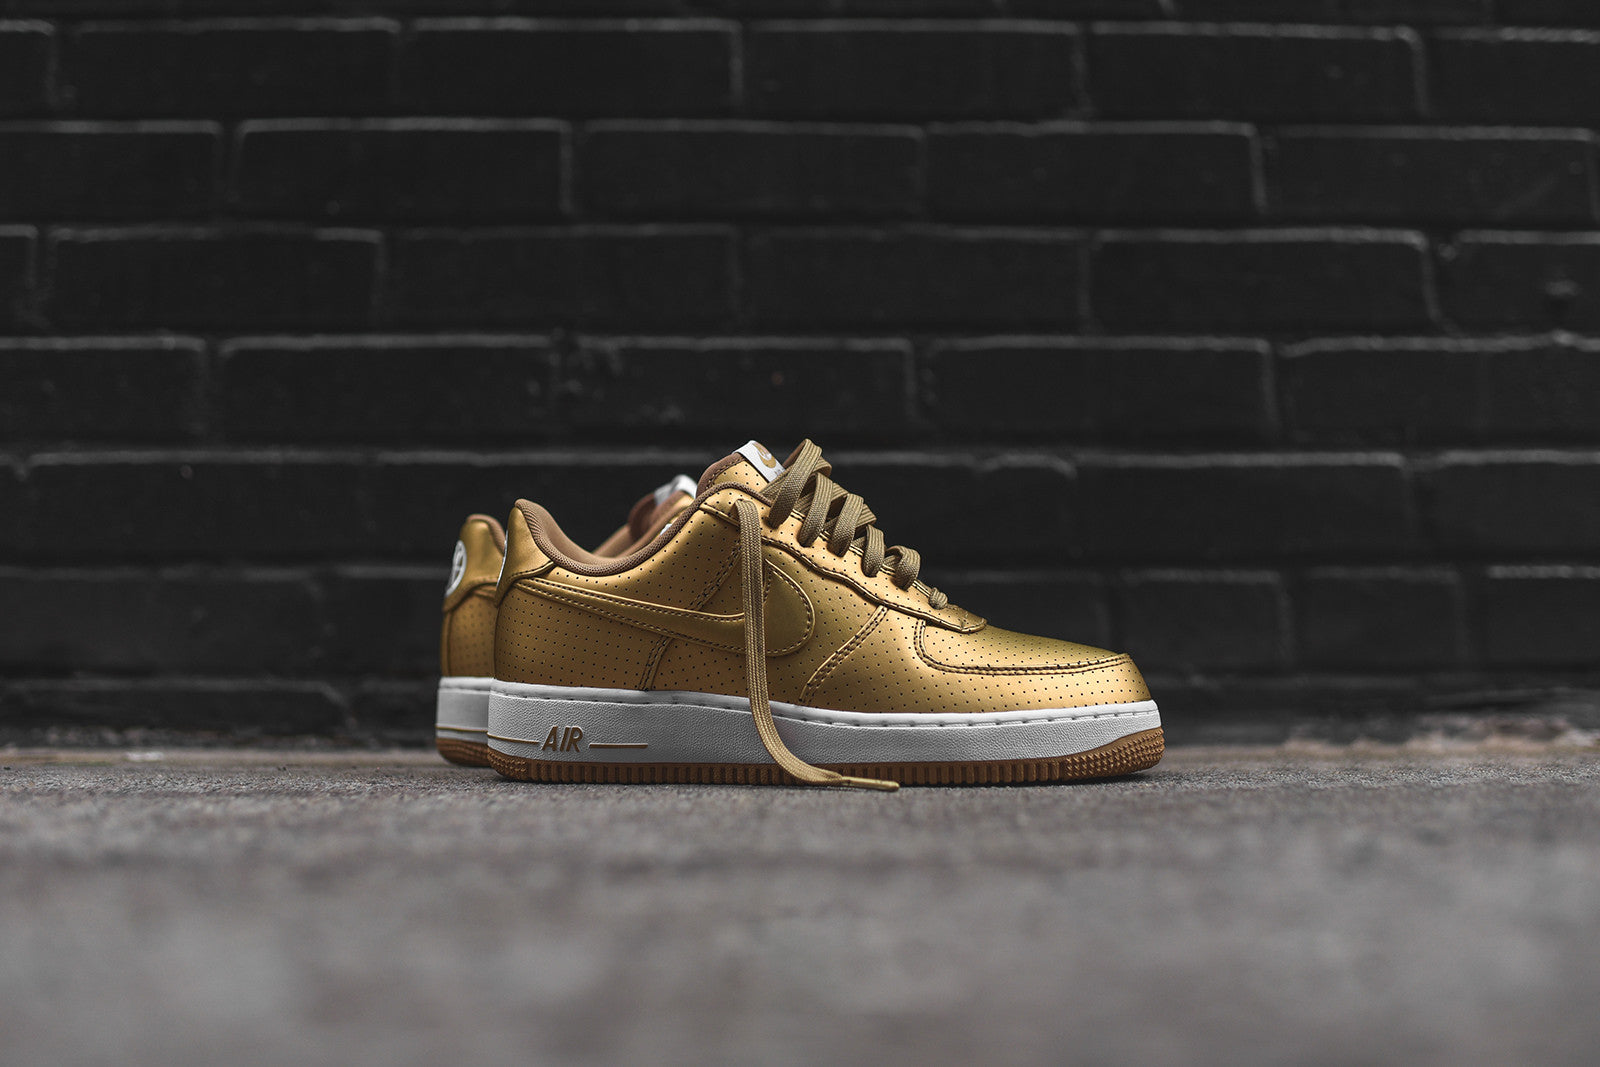 Nike Air Force One '07 LV8 - Gold